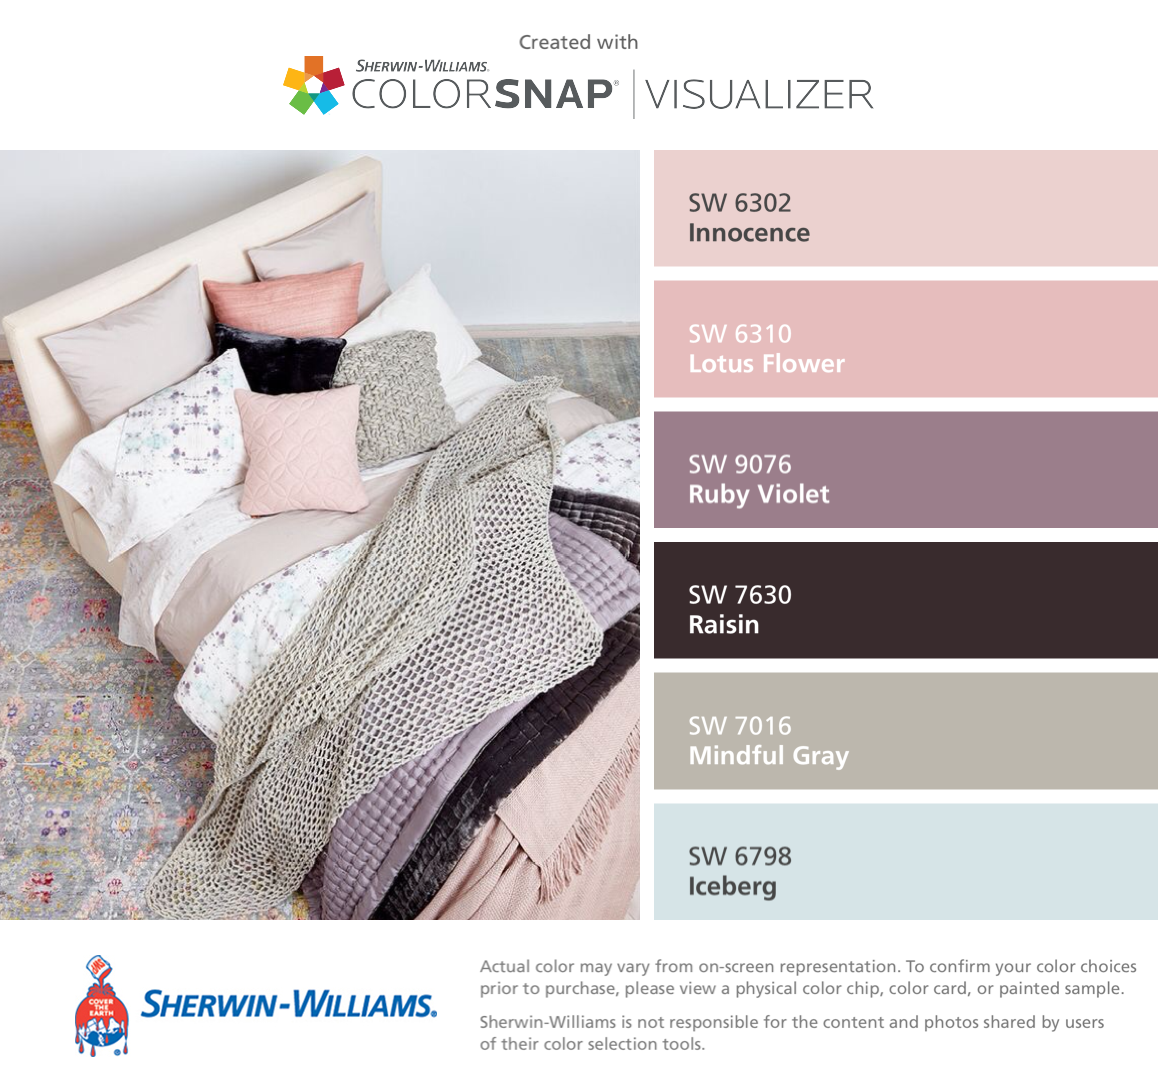 I found these colors with colorsnap visualizer for iphone by i found these colors with colorsnap visualizer for iphone by sherwin williams innocence sw 6302 lotus flower sw 6310 ruby violet sw 9076 izmirmasajfo